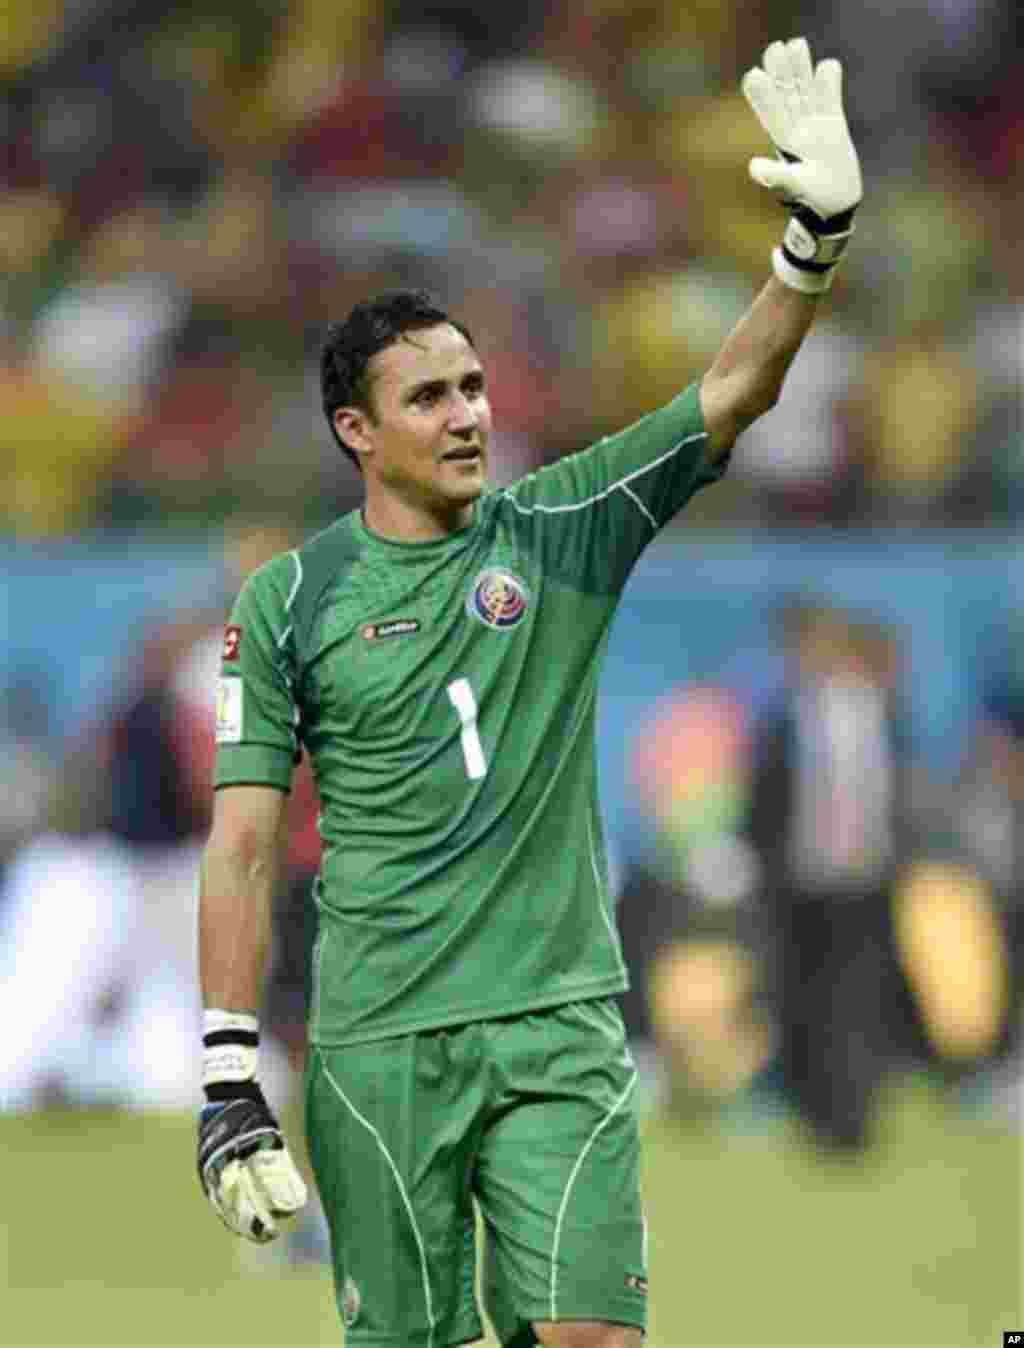 Costa Rica's goalkeeper Keylor Navas waves to supporters after Costa Rica defeated Greece 5-3 in penalty shootouts after a 1-1 tie during the World Cup round of 16 soccer match between Costa Rica and Greece at the Arena Pernambuco in Recife, Brazil, Sunda